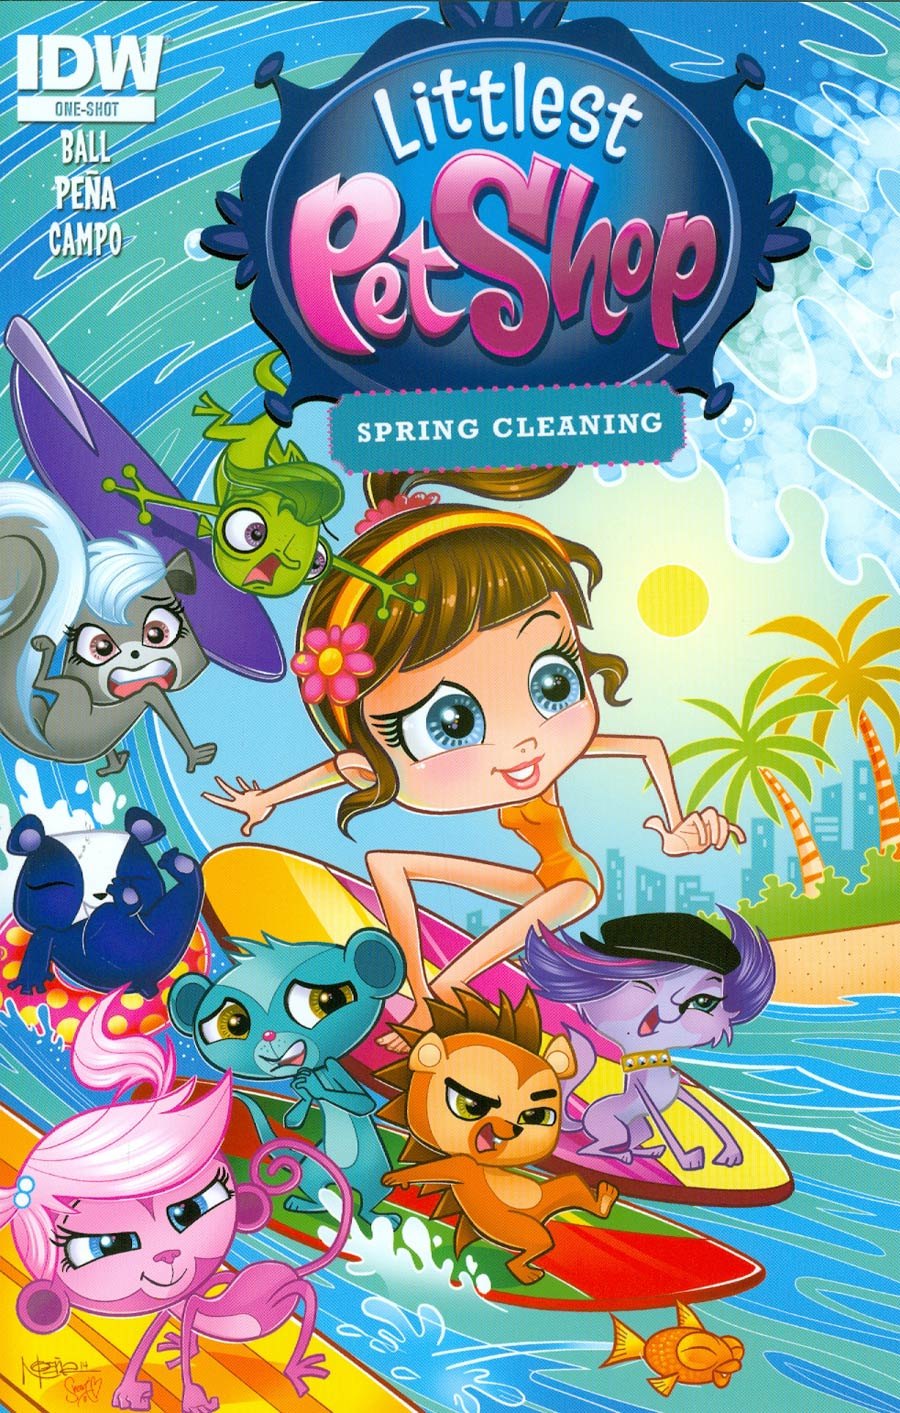 Littlest Pet Shop Spring Cleaning One Shot Cover A Regular Nicanor Pena Cover